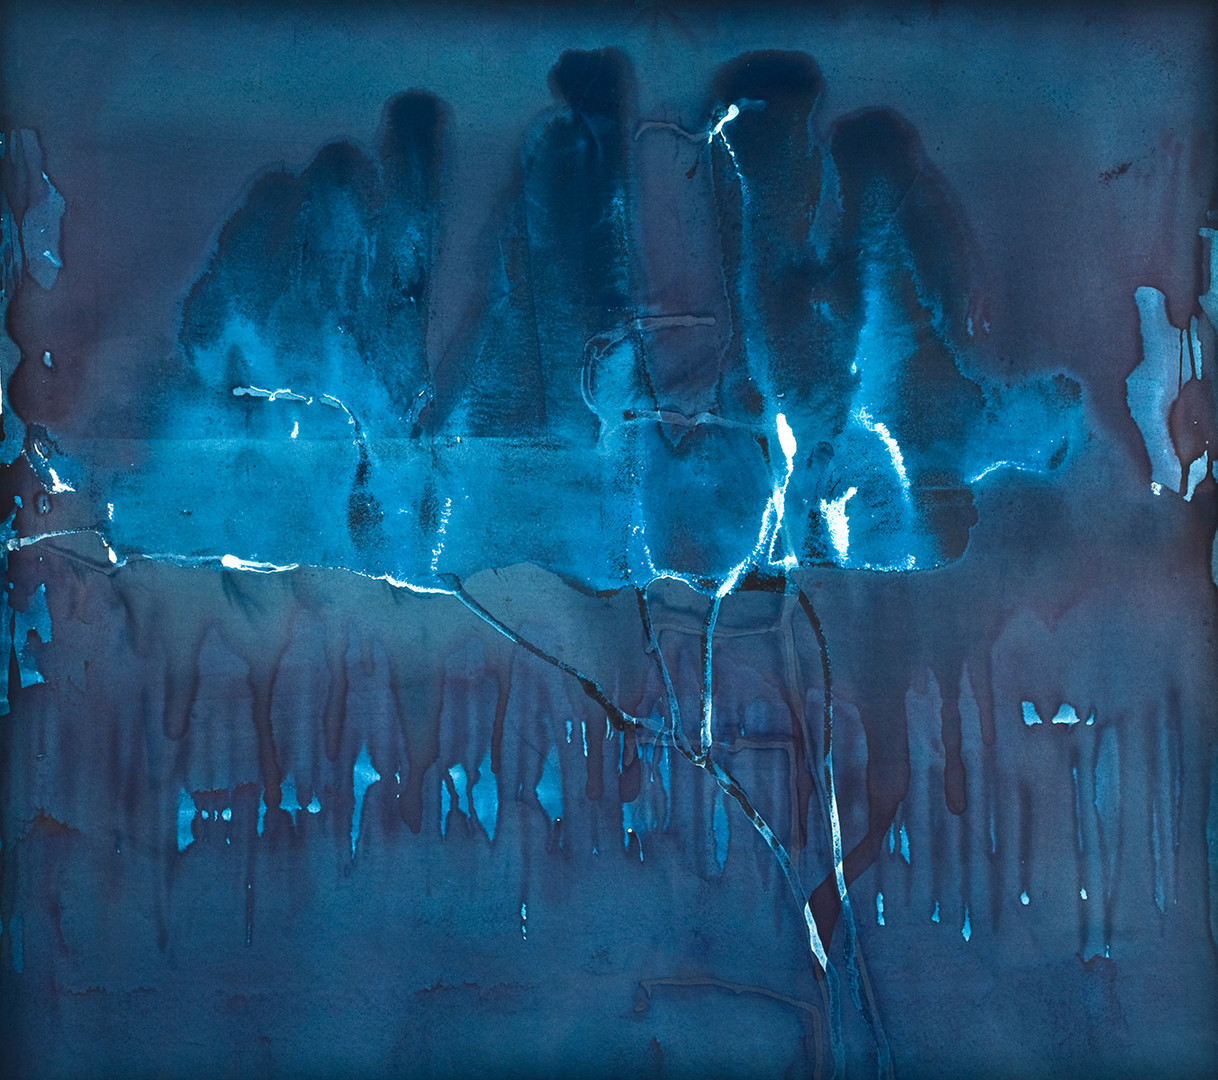 Untitled, from the 'Prussian Blue' series